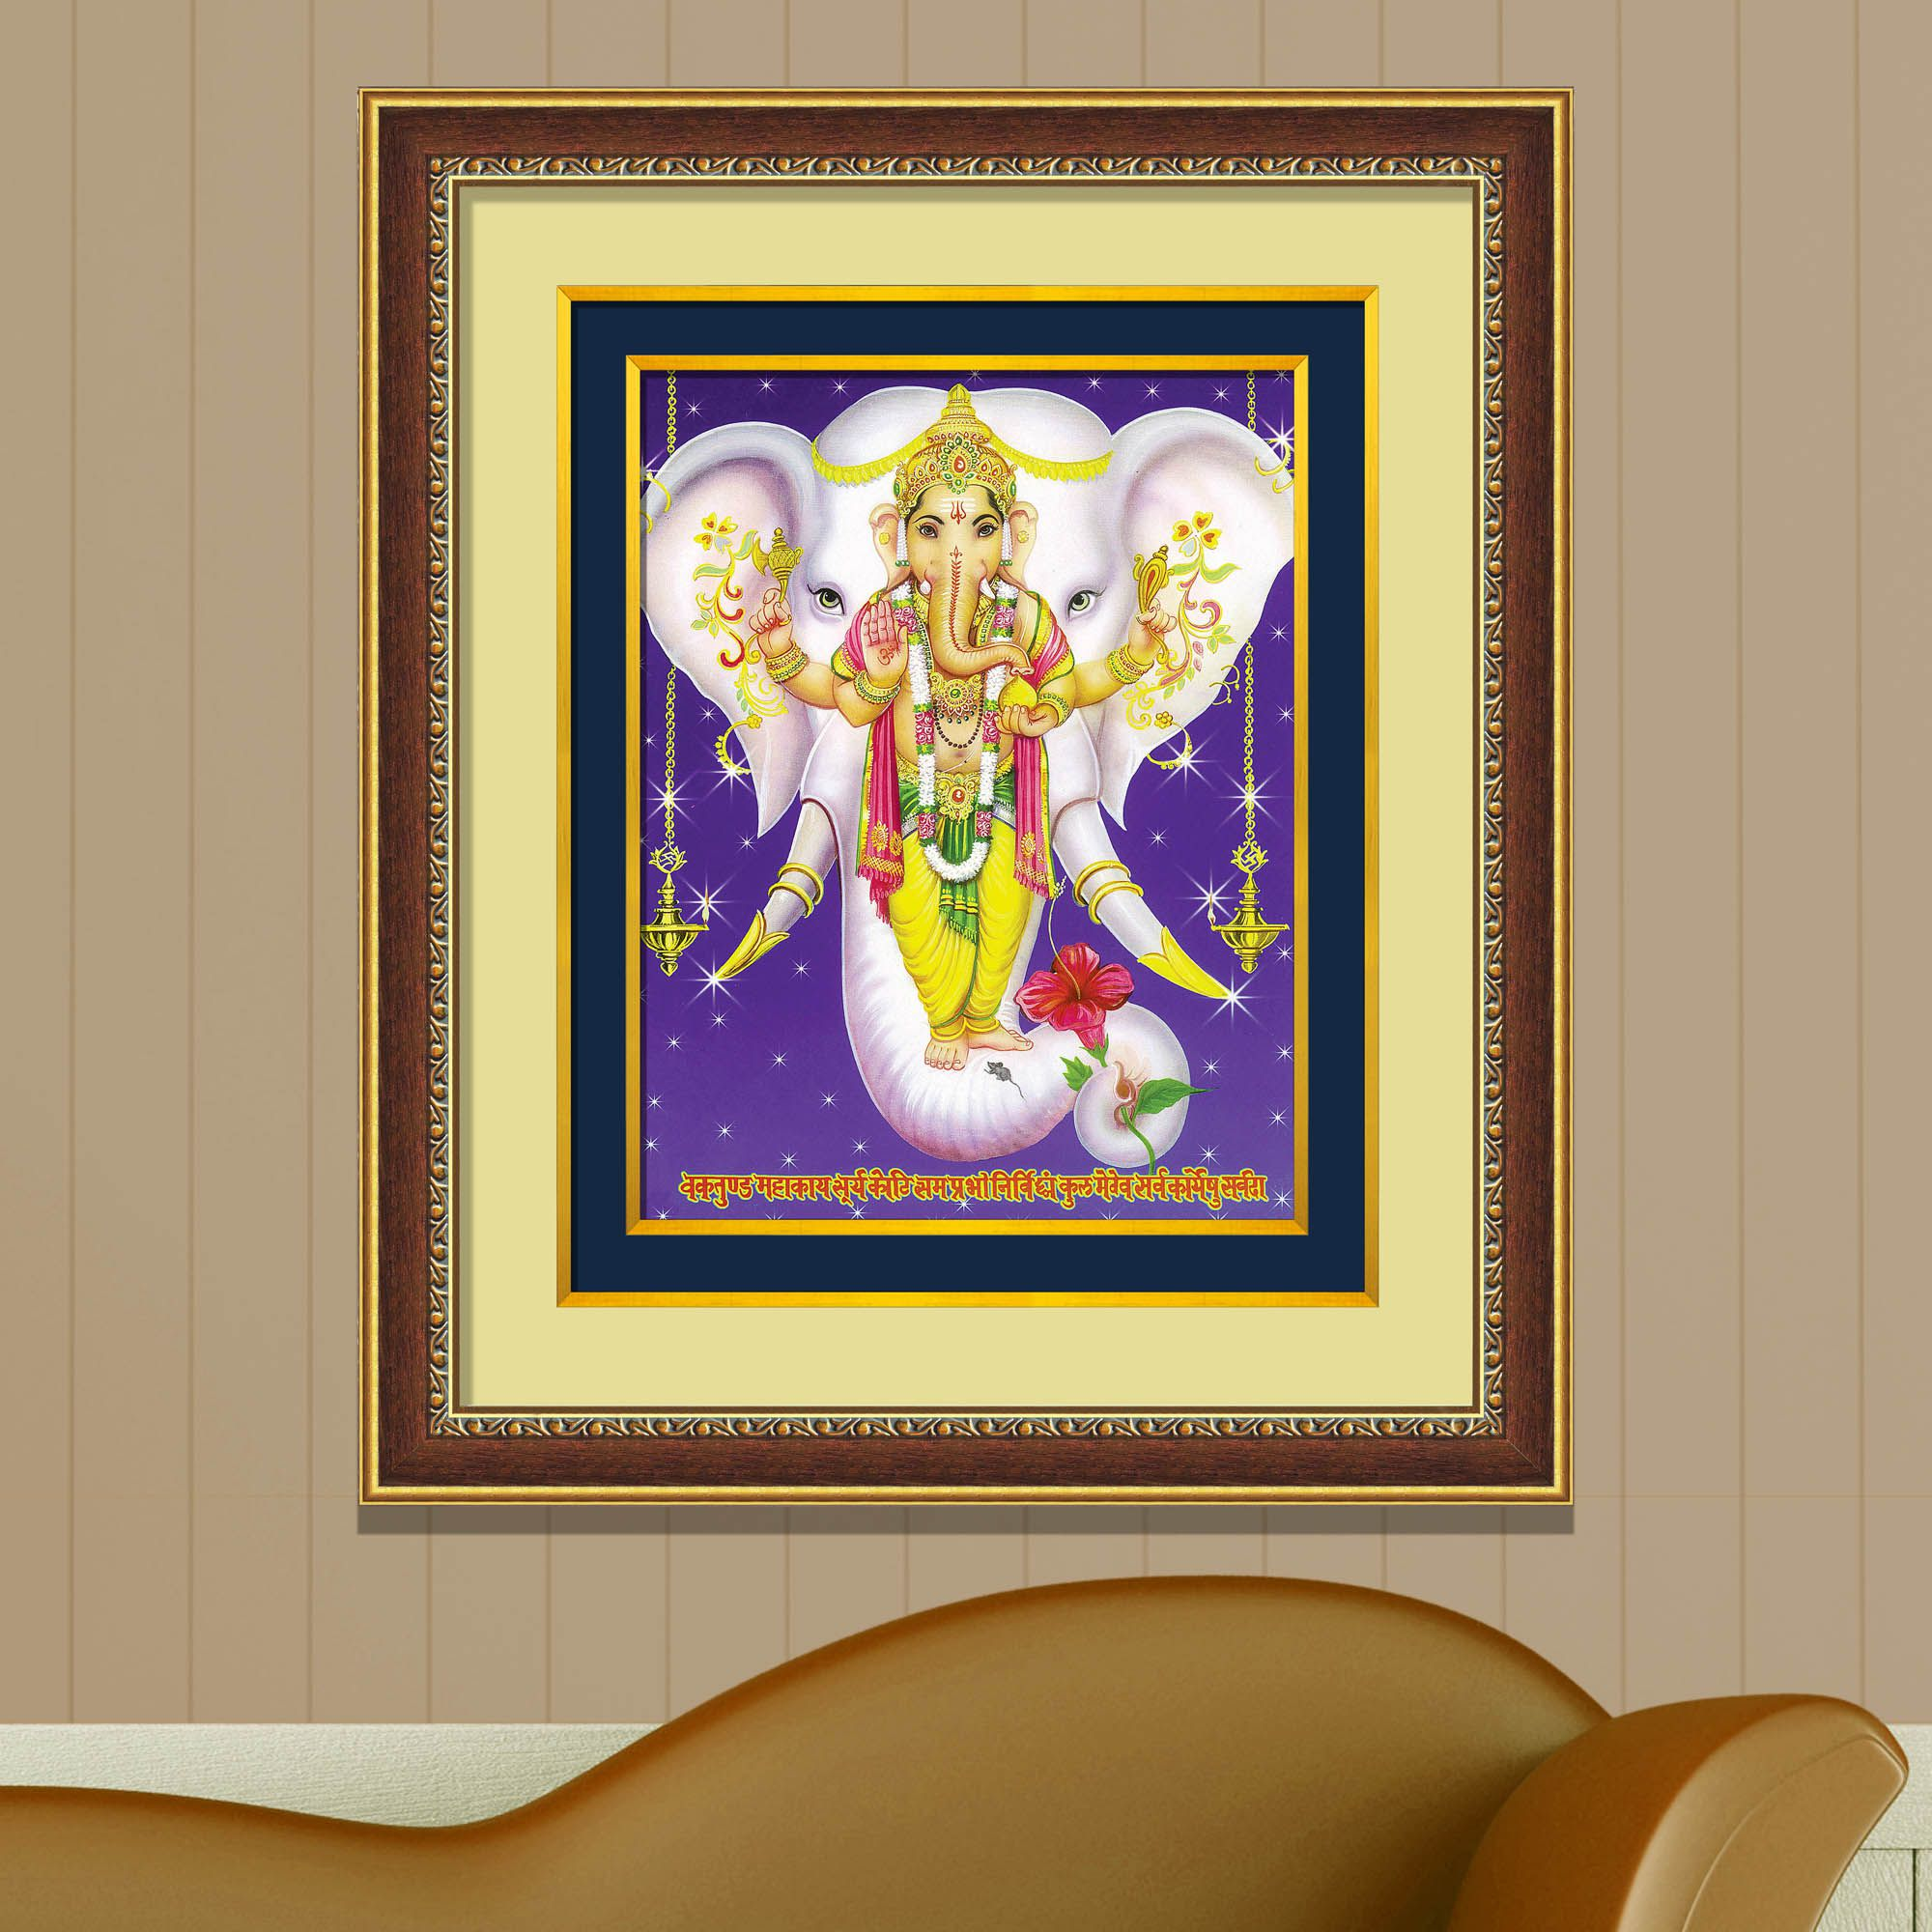 IMAGINATIONS Double Mounted Golden Beeding Digital Gift Art 18 inch X 21 inch Paper Painting With Frame